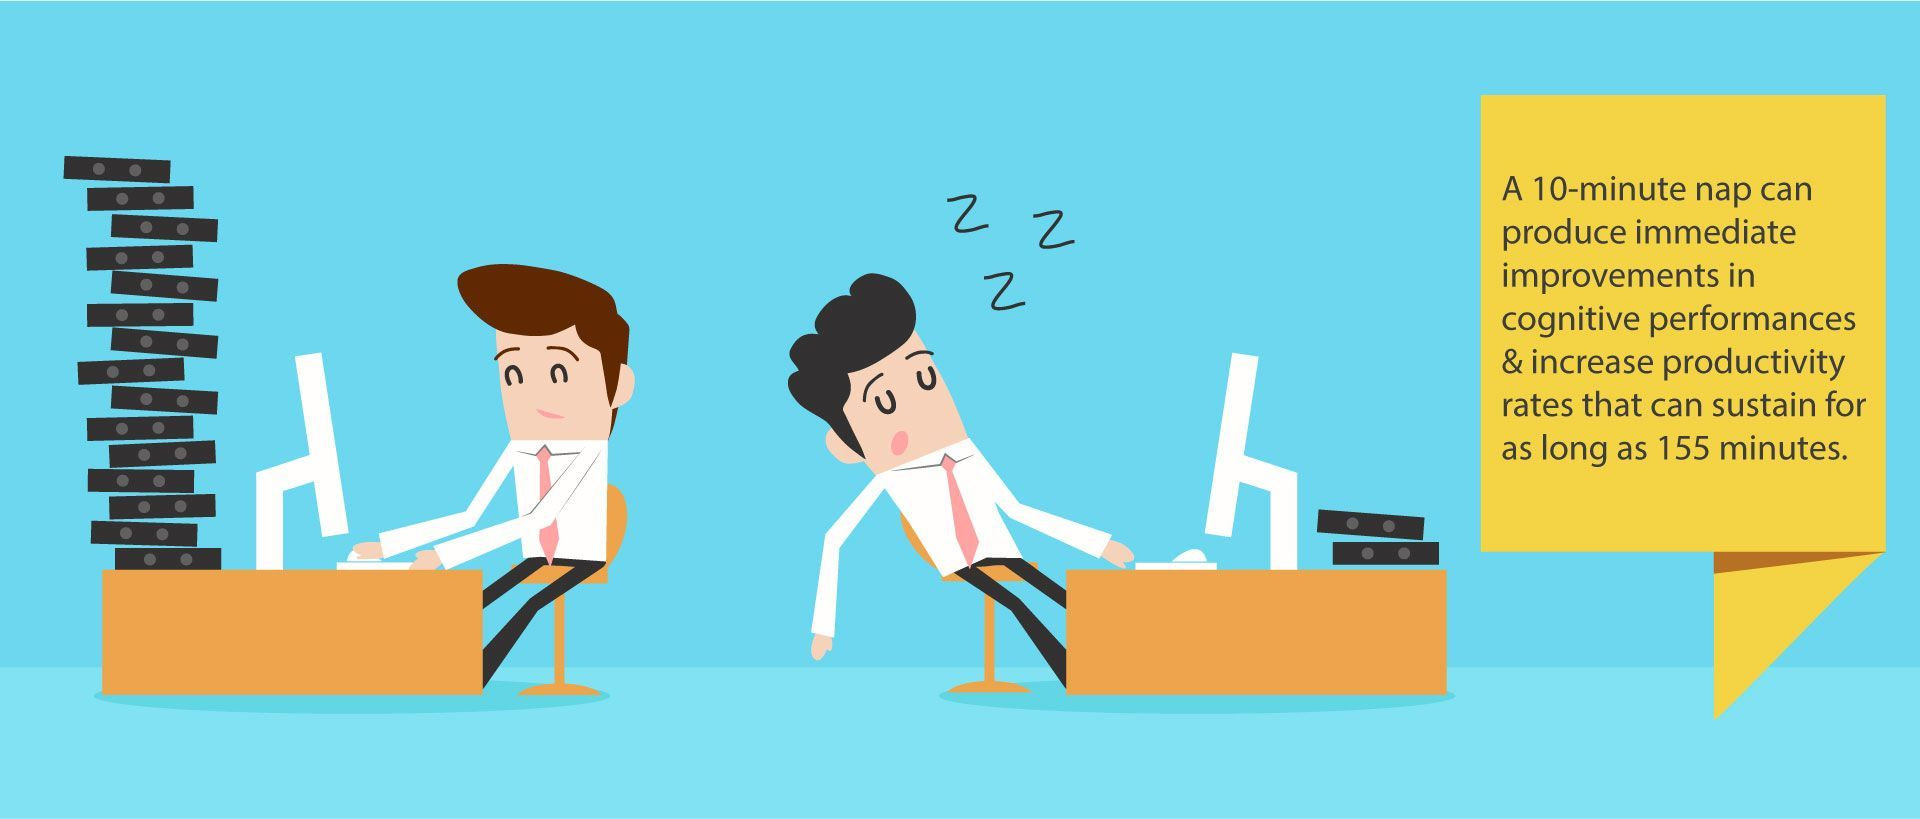 Power Naps for Productivity?Power naps can alleviate our